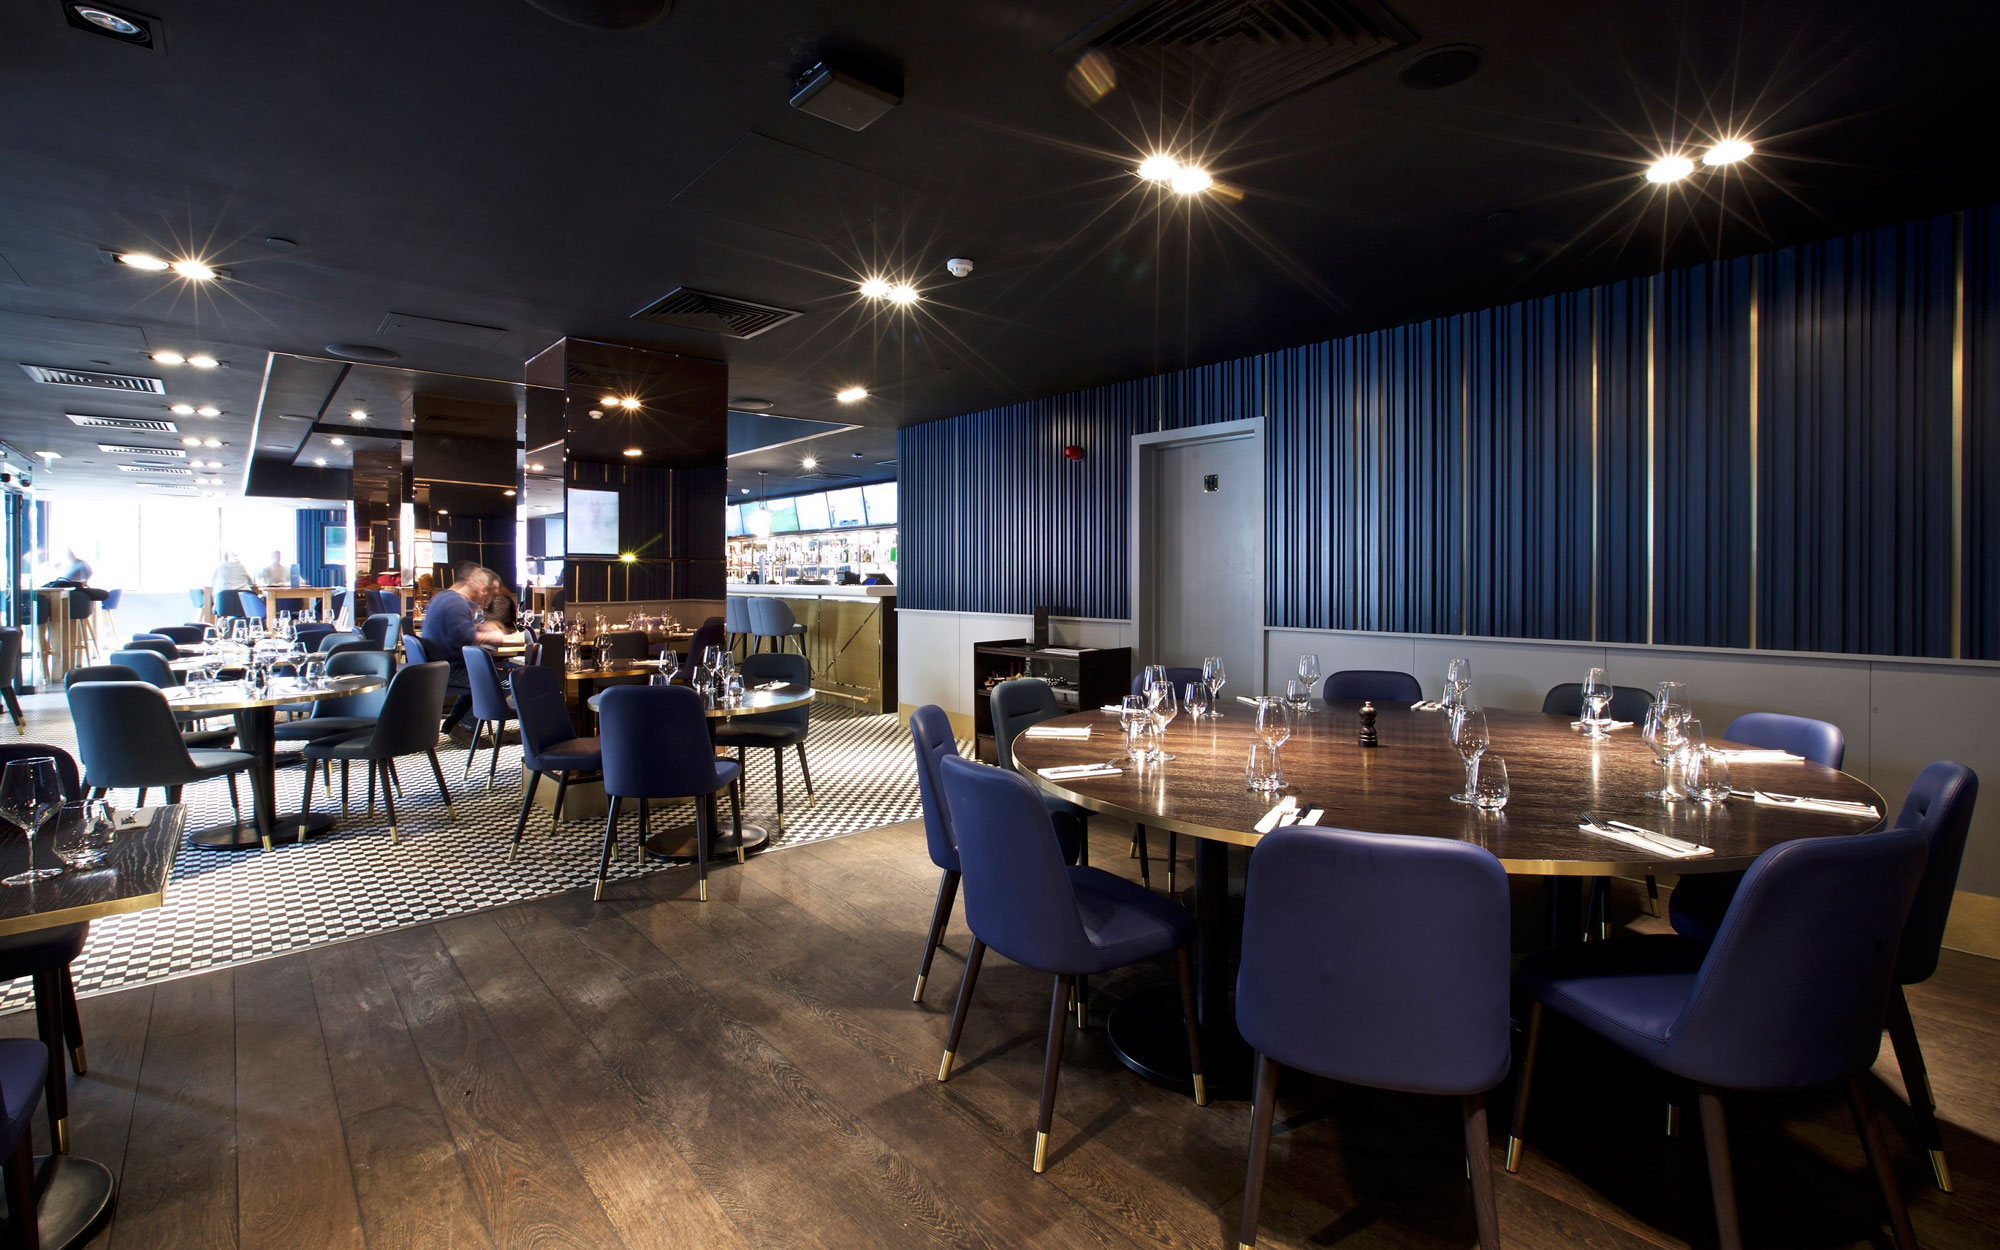 Frankie's Bar & Grill at Chelsea Football Club new interiors